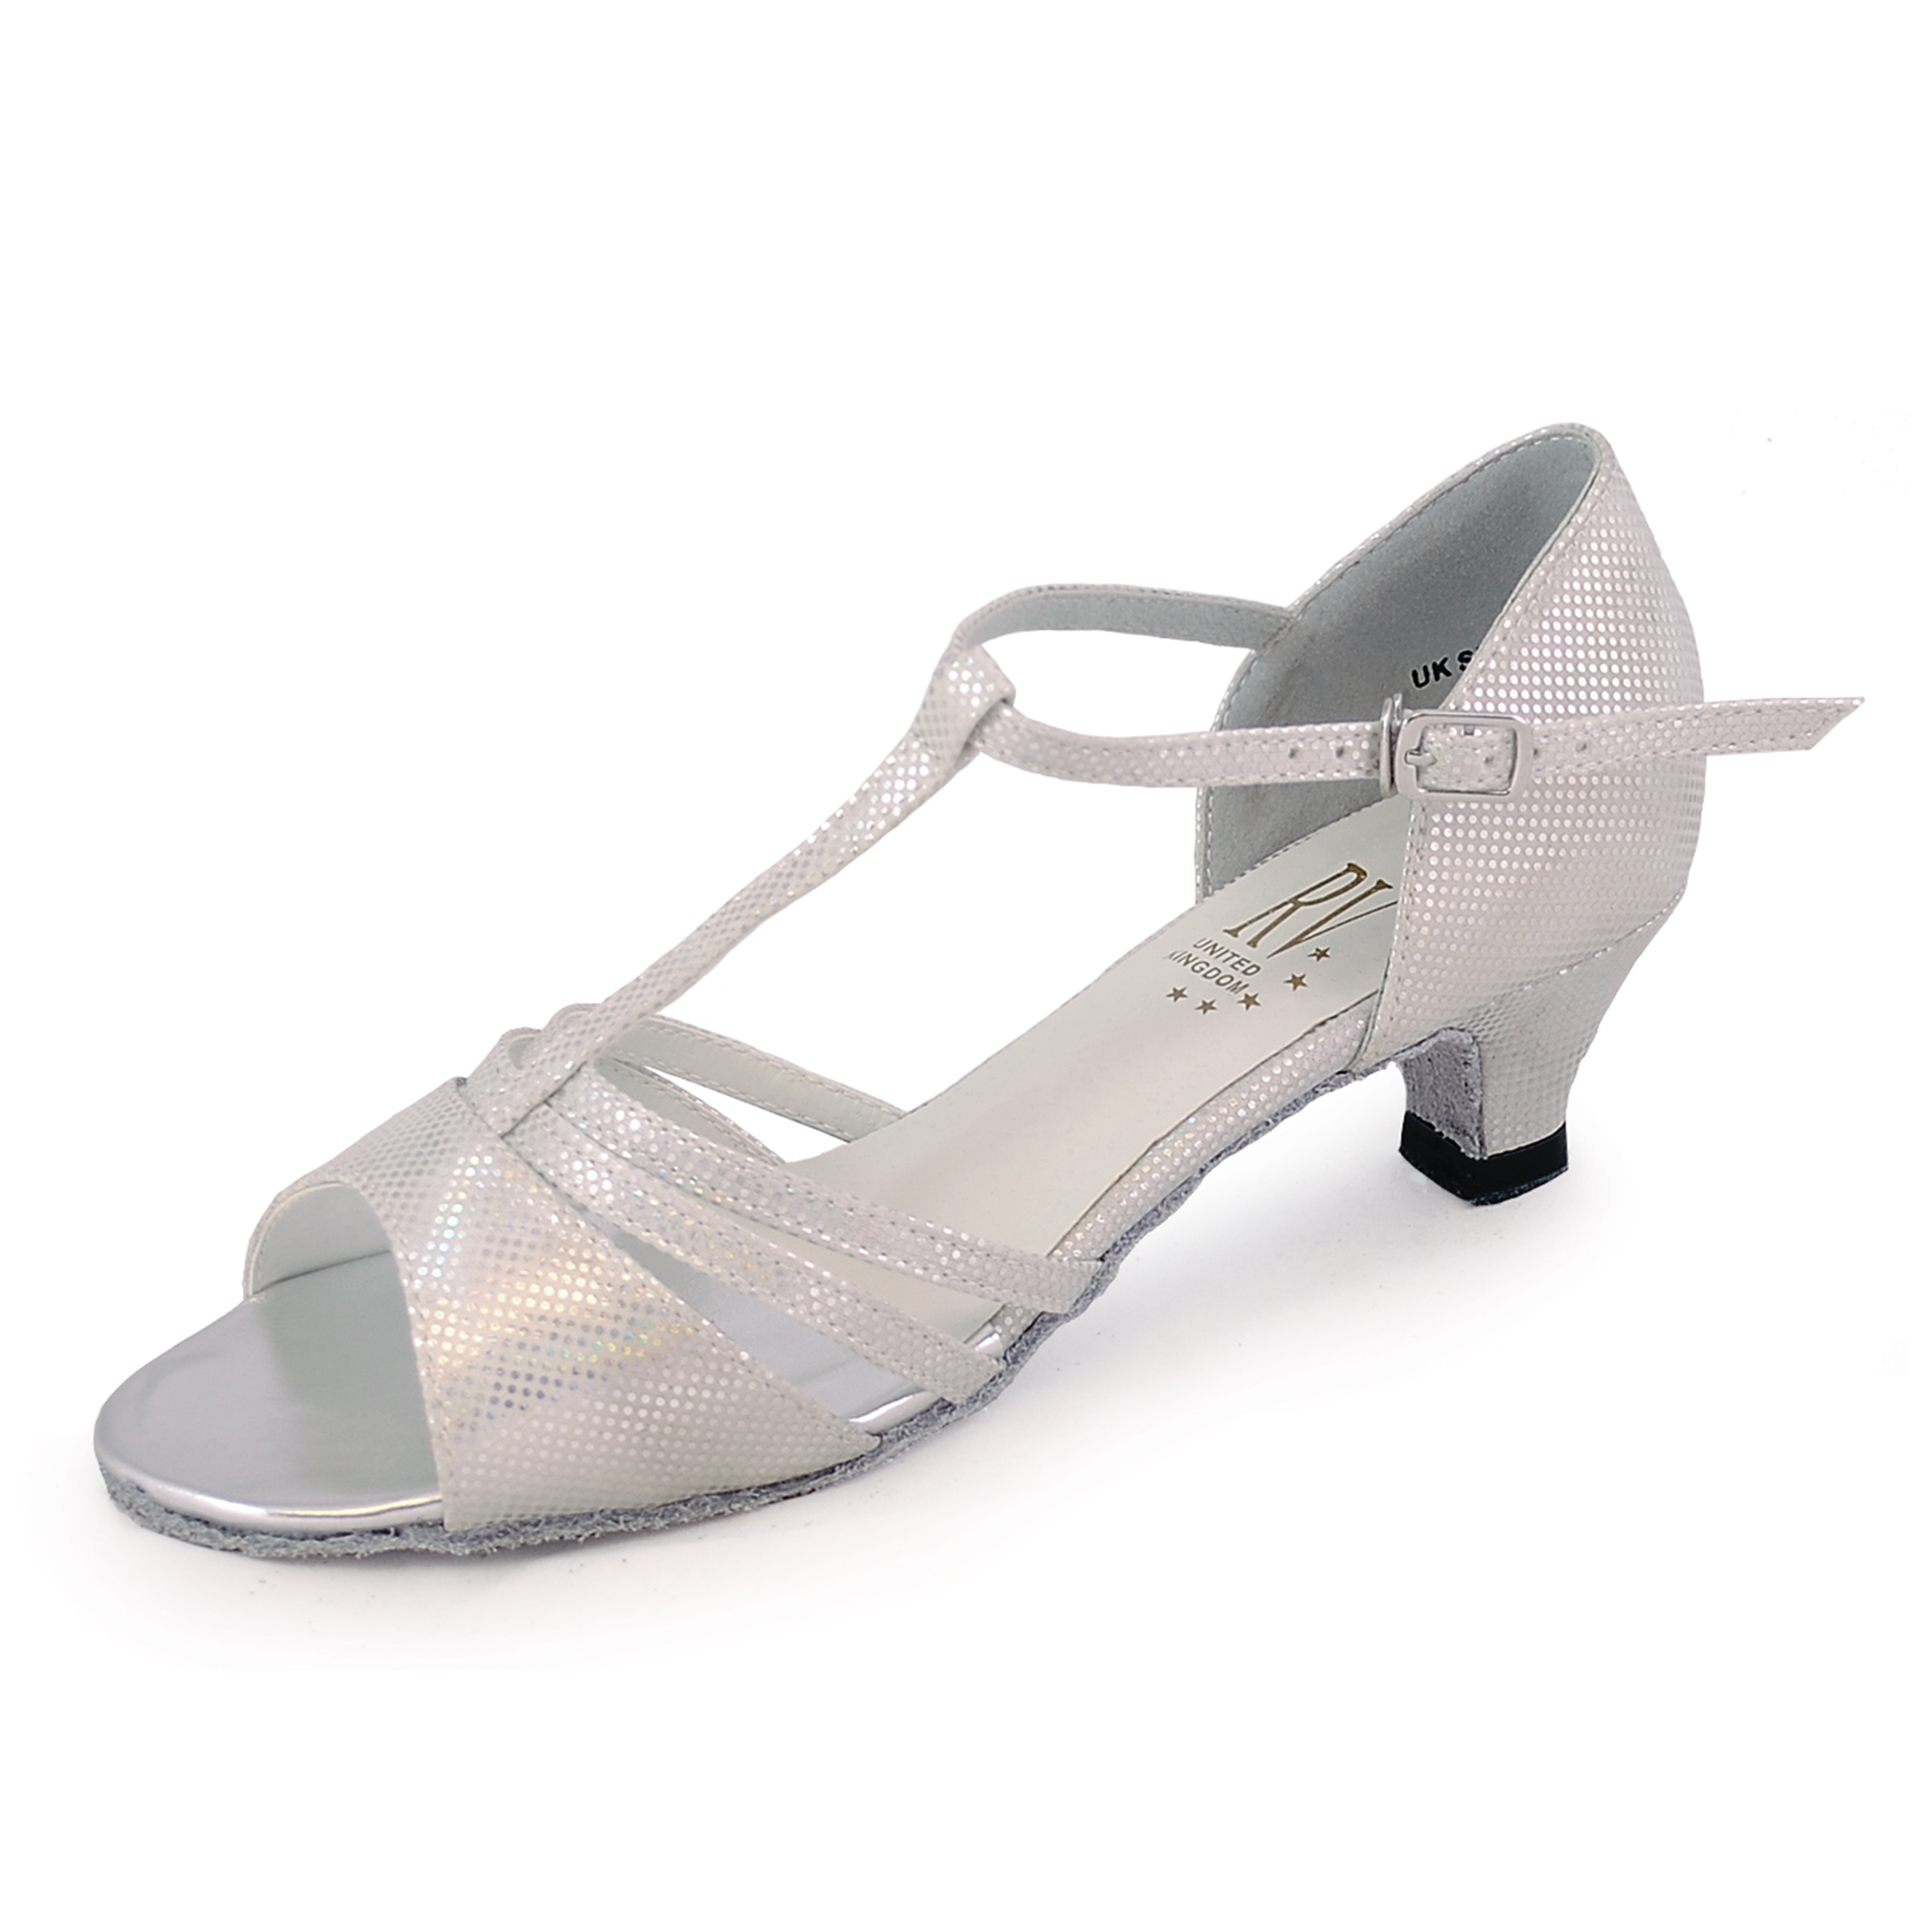 193c8e608 Roch Valley Evie Ladies Dance Shoes 1.2″ Heels White / Silver